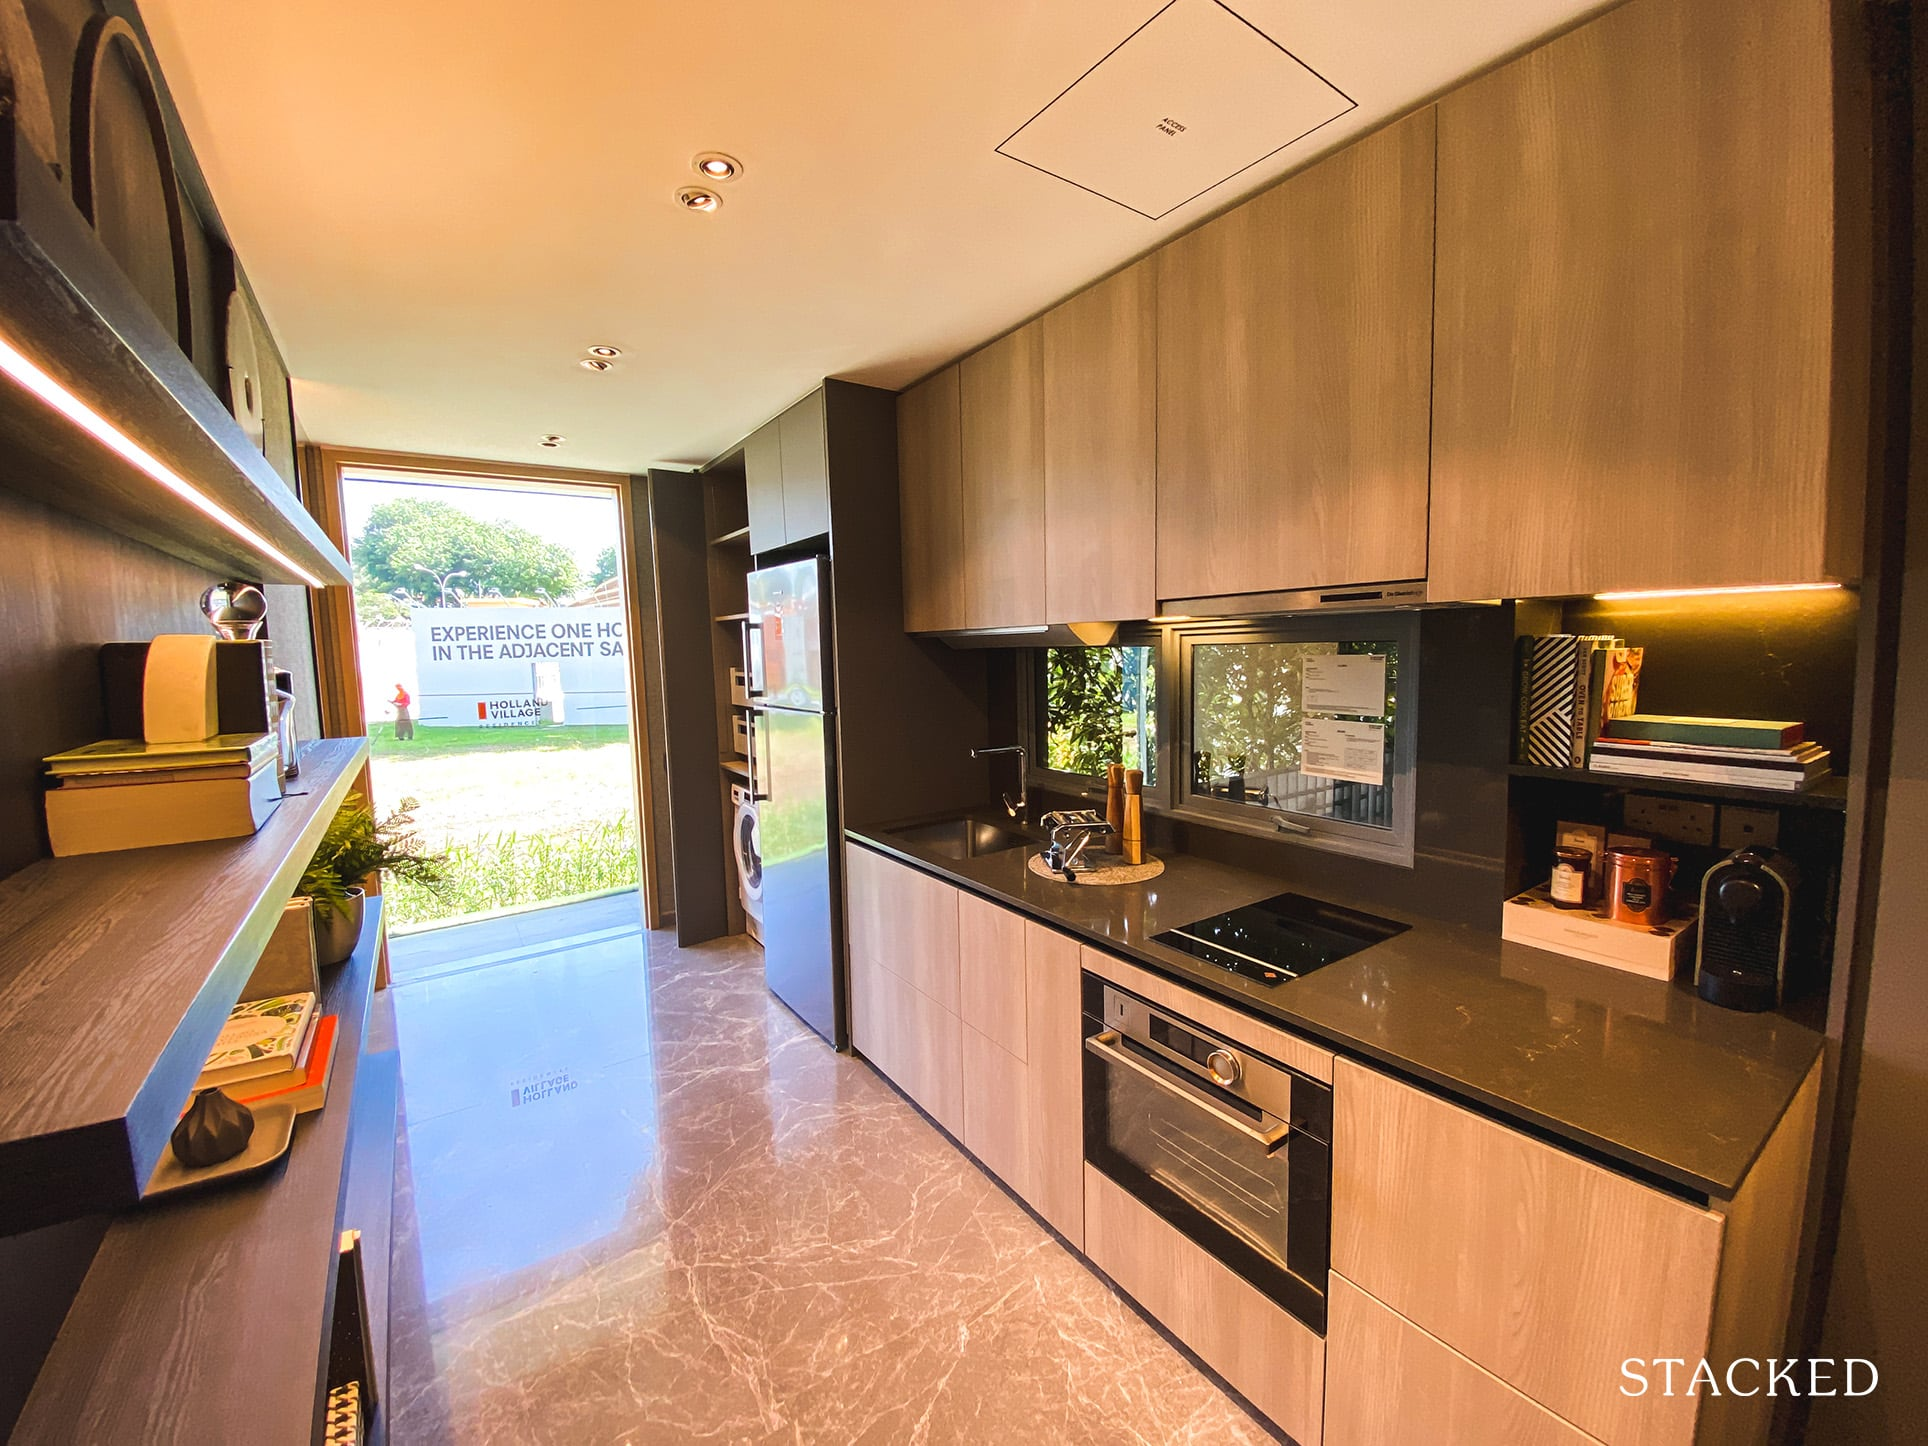 one holland village residences 2 bedroom kitchen